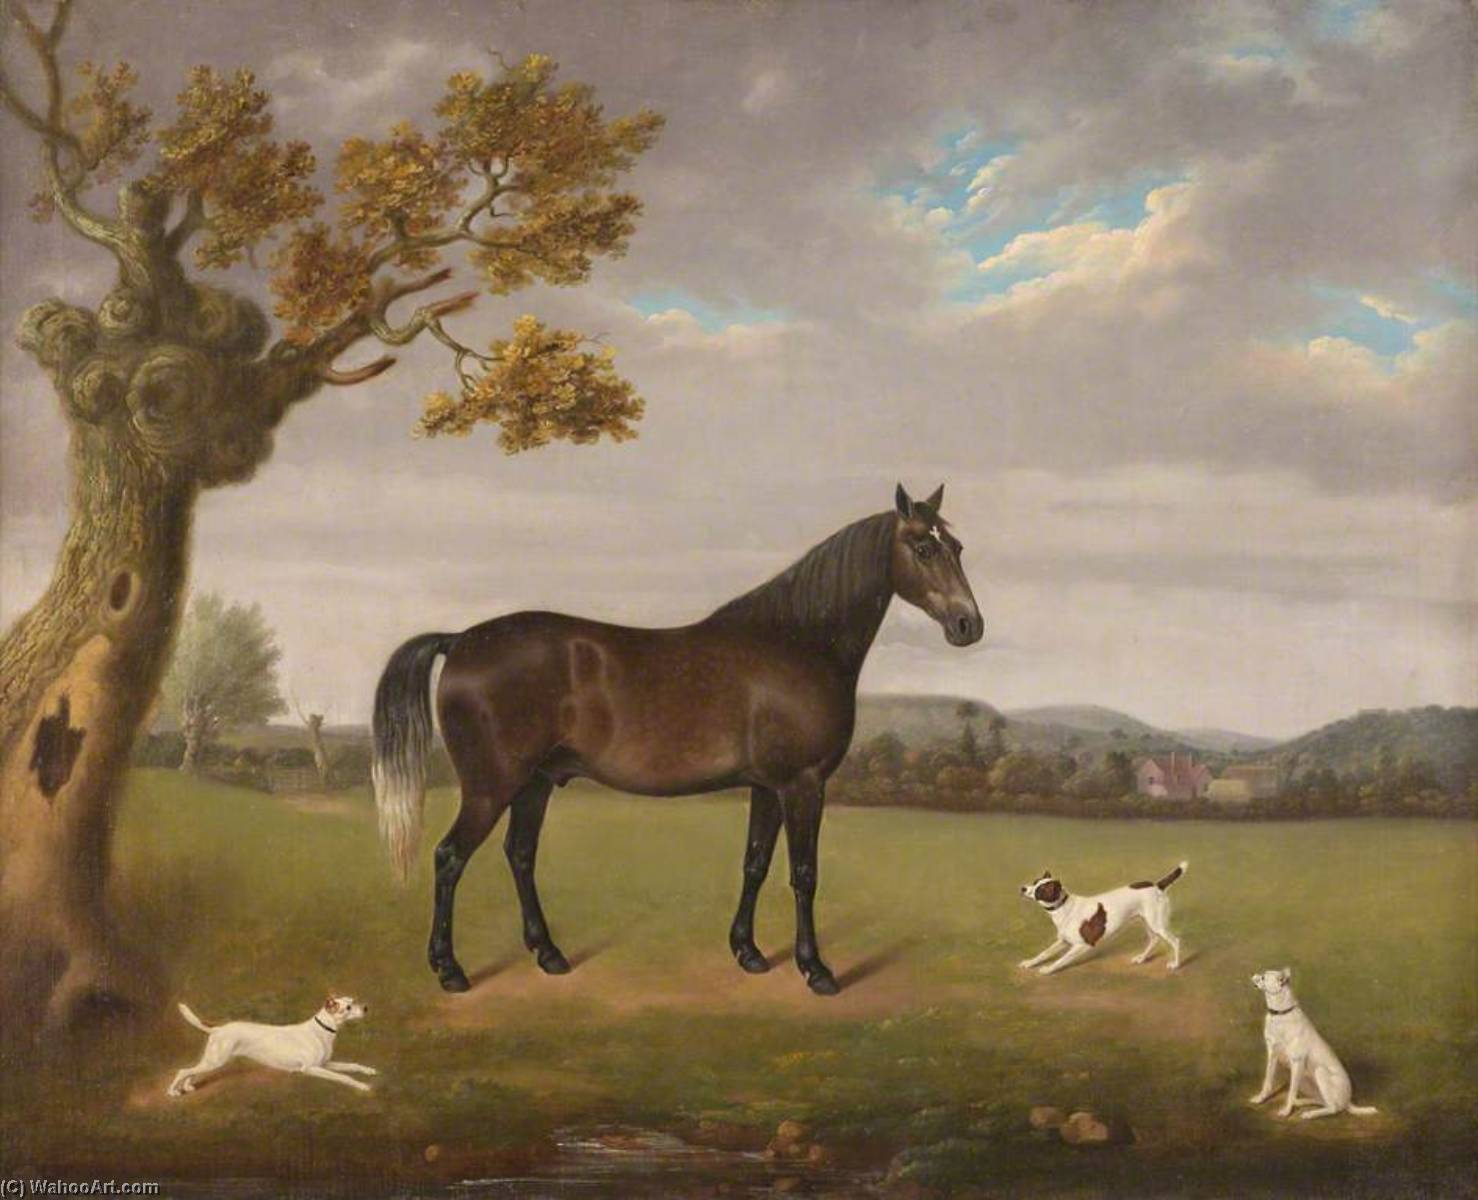 Horse in a Field with Three Dogs, Oil On Canvas by Edmund Ward Gill